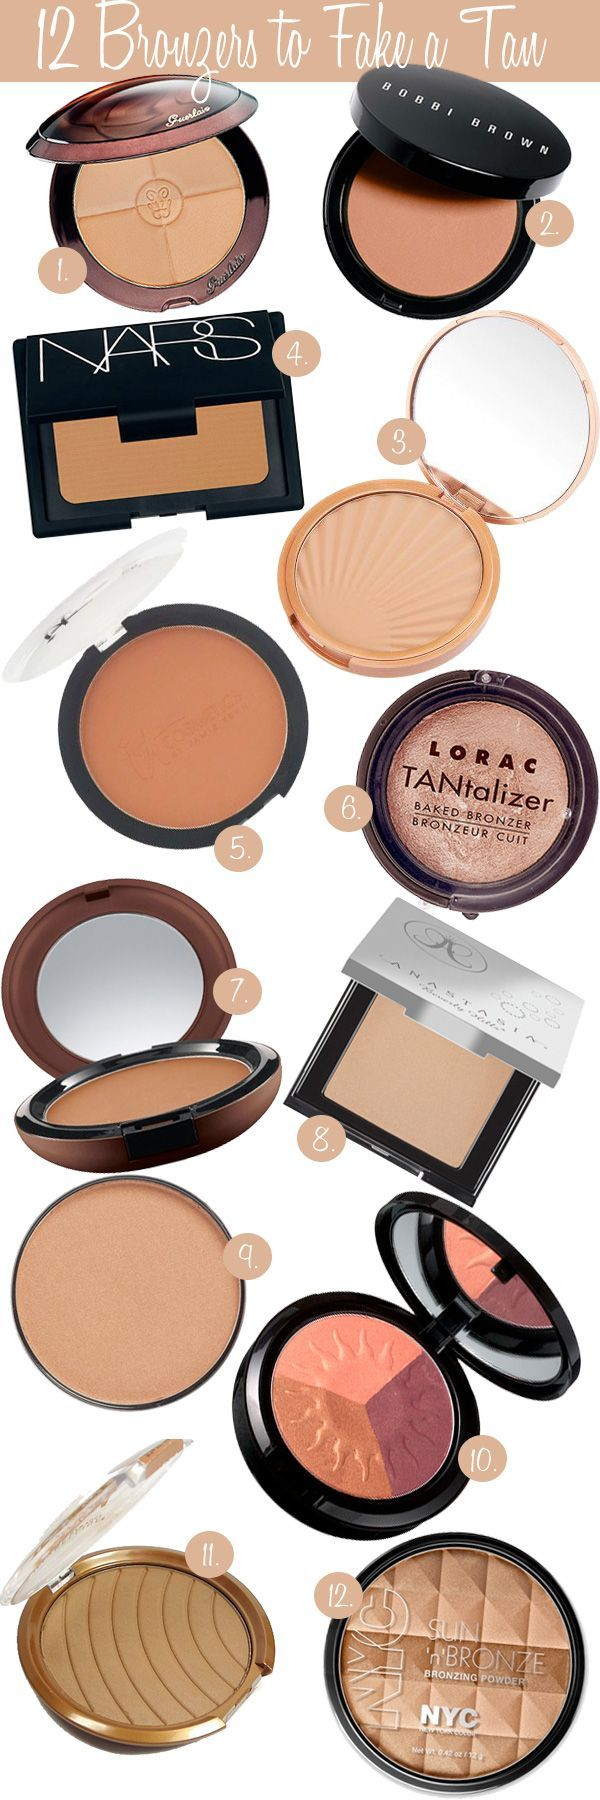 Best Bronzers to Fake a Tan